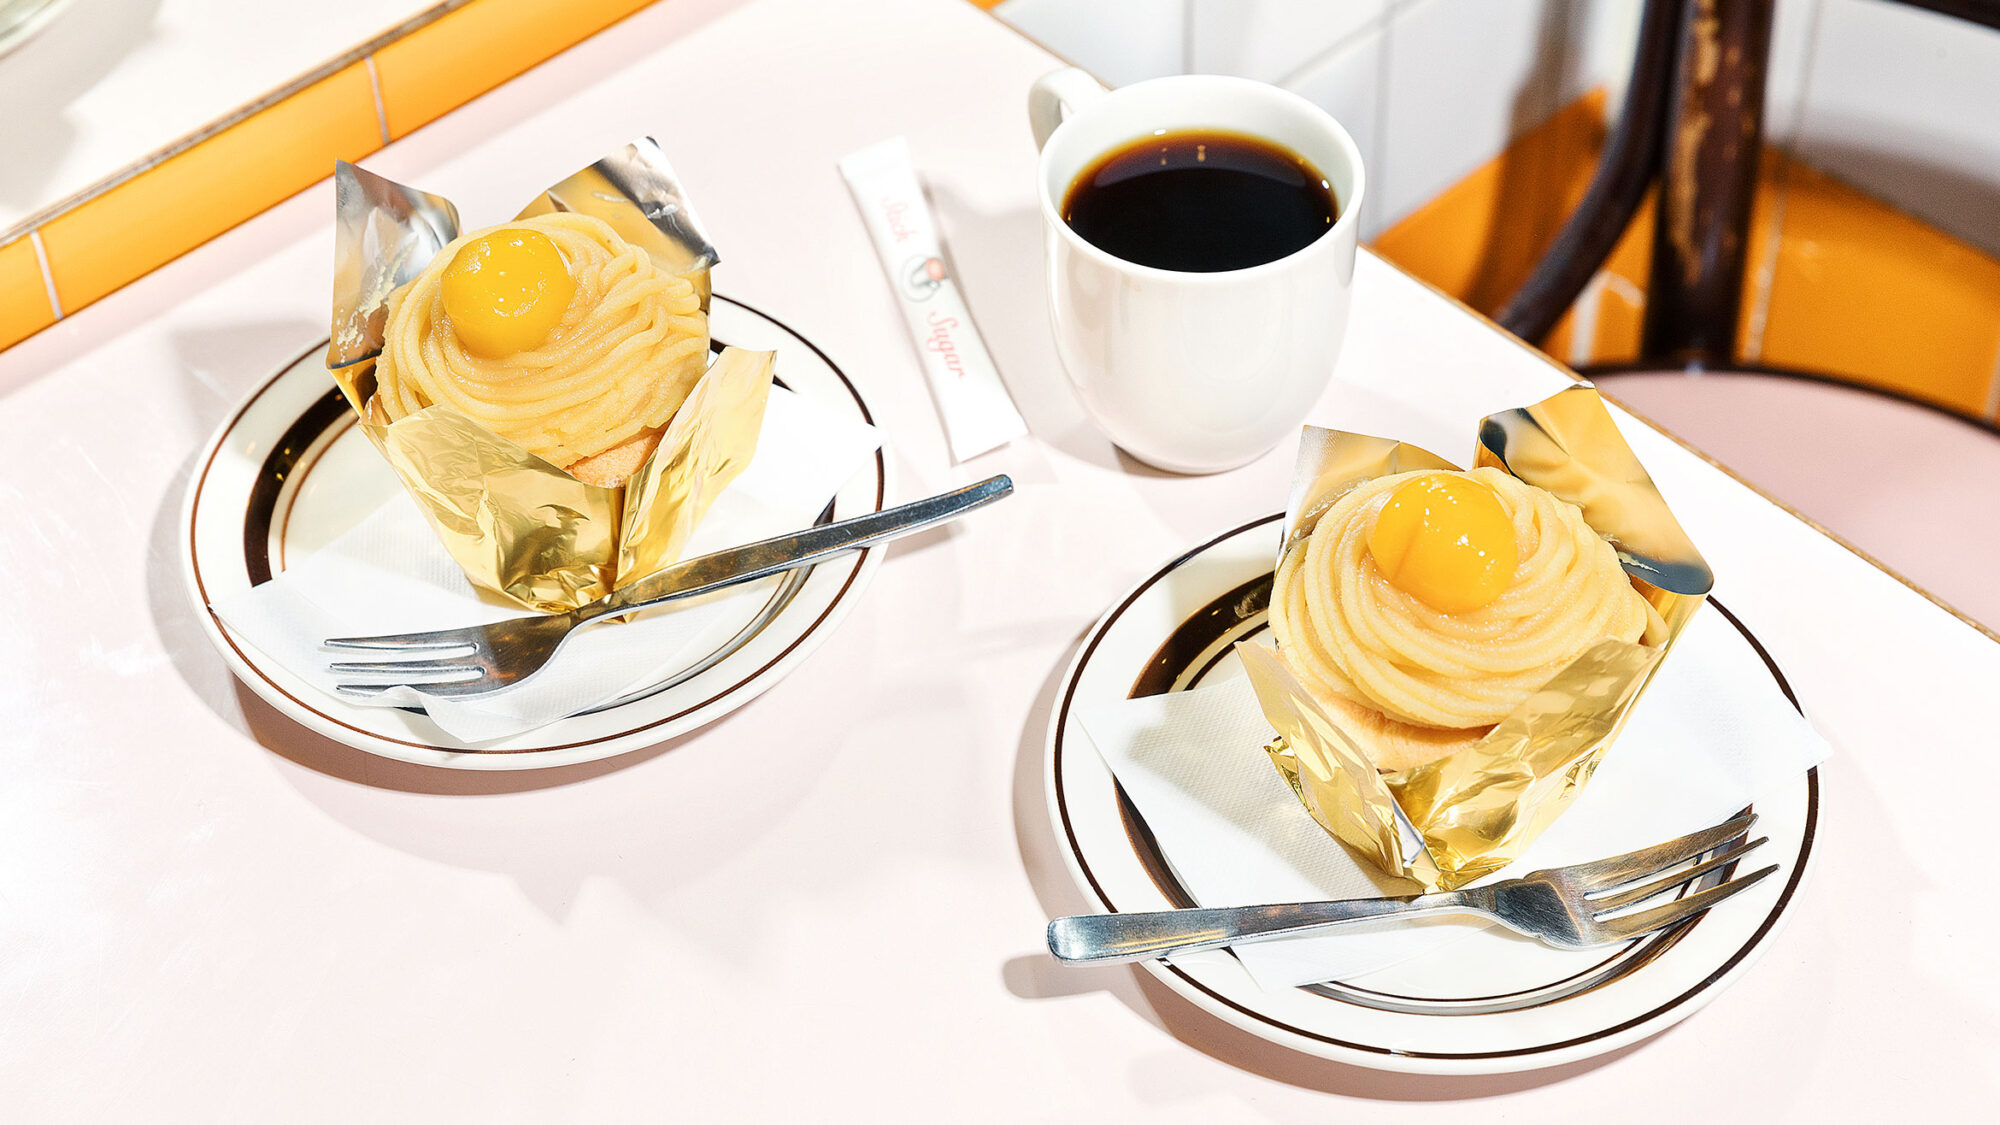 Article-Japan-Mont-Blanc-Pastry